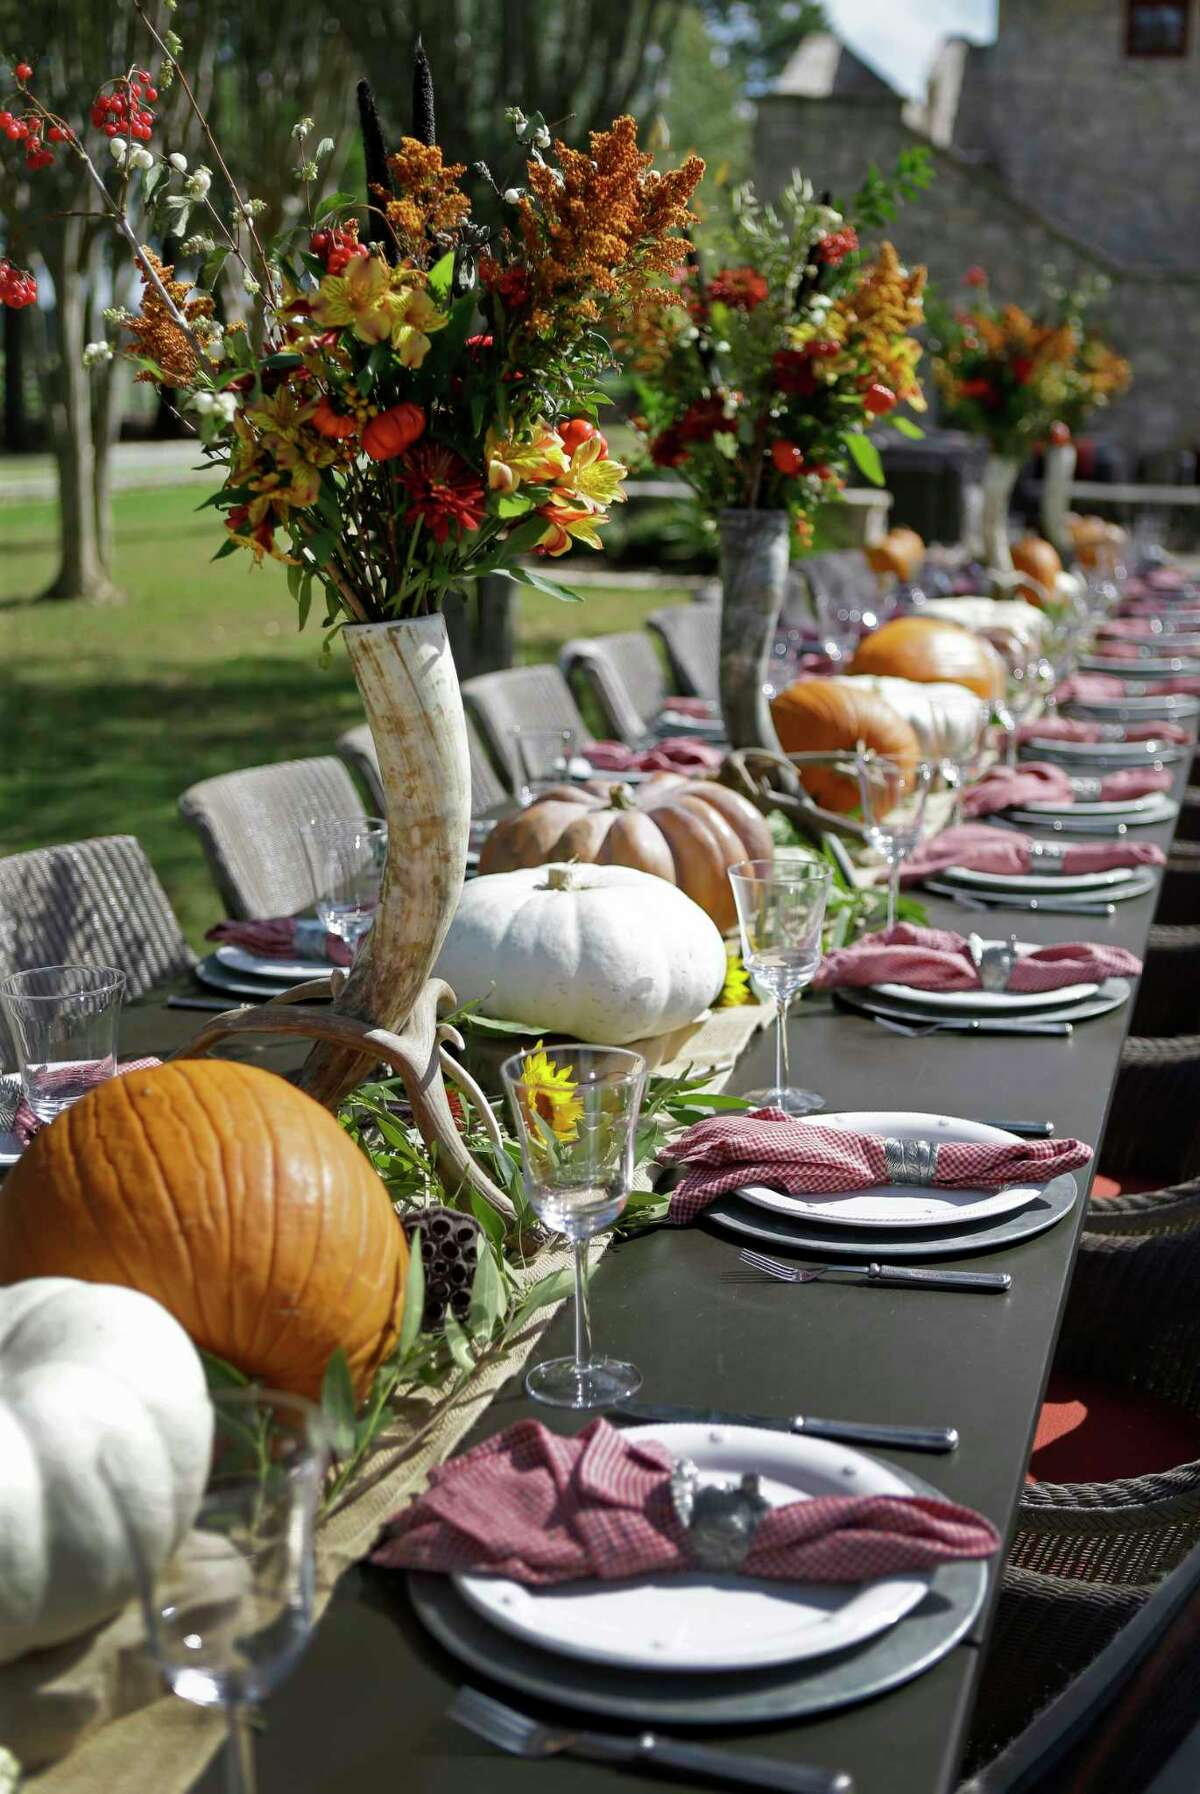 Lucas-Eilers Design Associates designed an outdoor tablescape for 28 using pumpkins, gourds, antlers and tall, skinny vases holding a bouquets of fall colors above the crowd. Tableware courtesy of Kuhl-Linscomb.